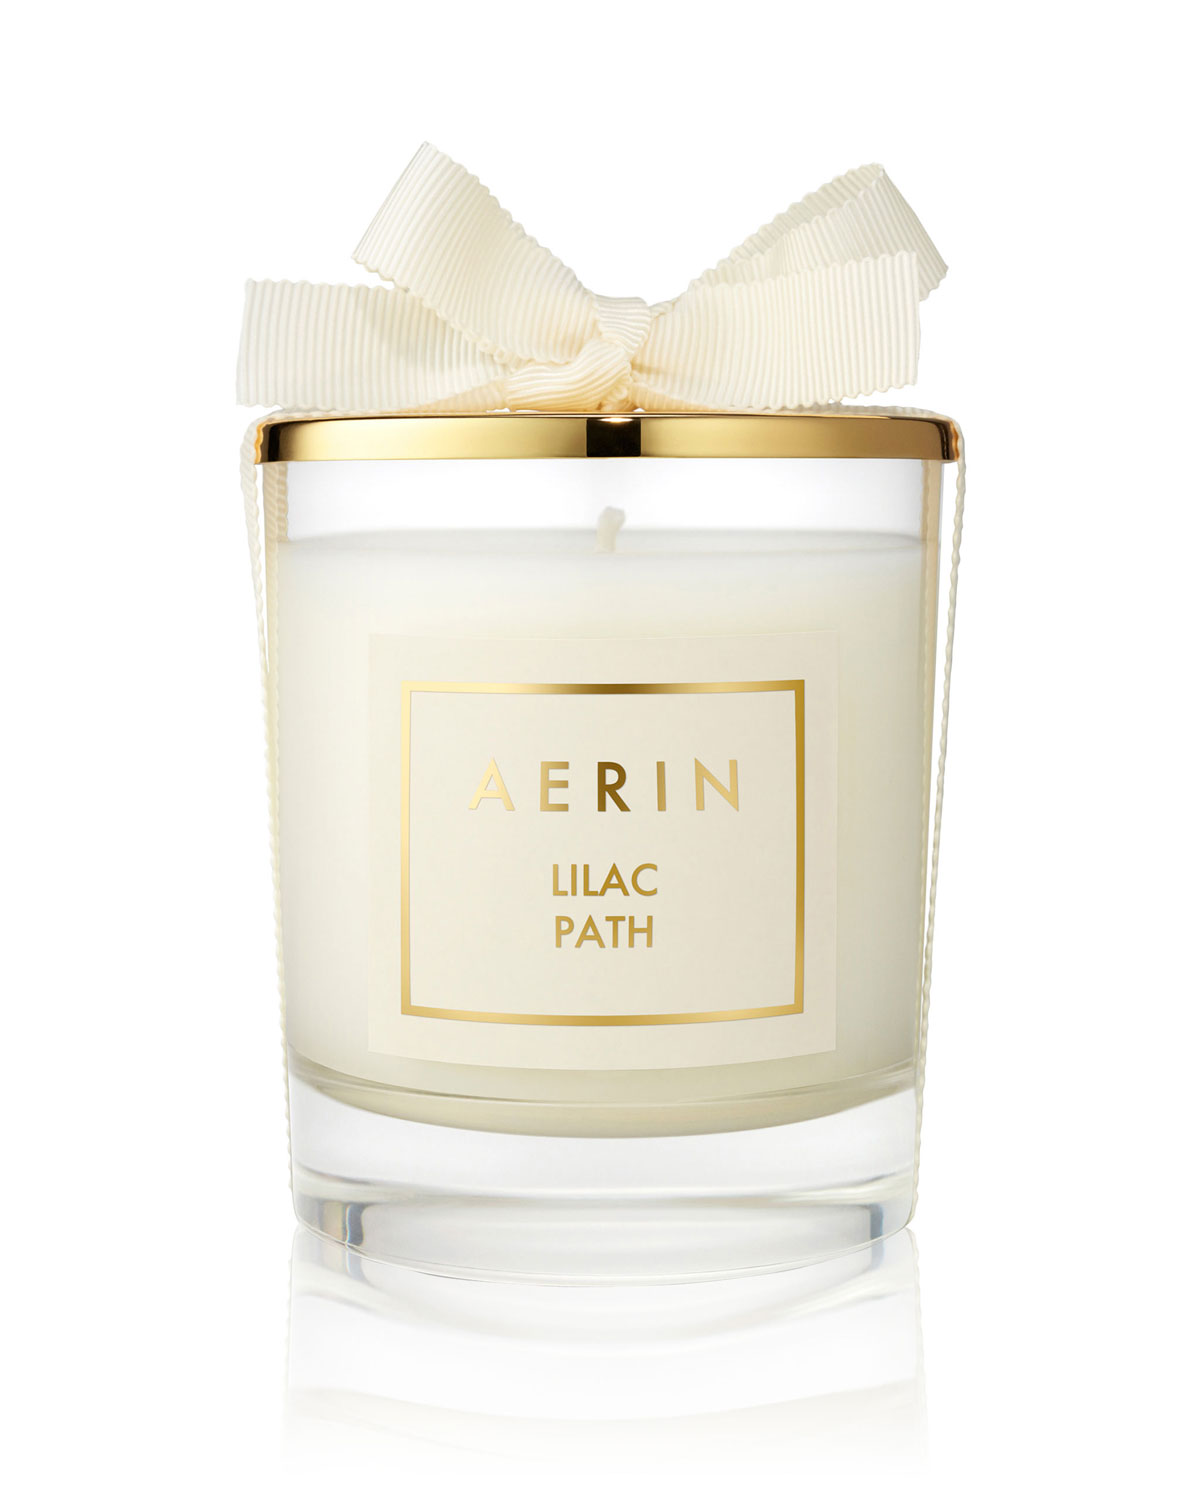 AERIN Limited Edition Lilac Path Candle, 7 oz.  /  200 g